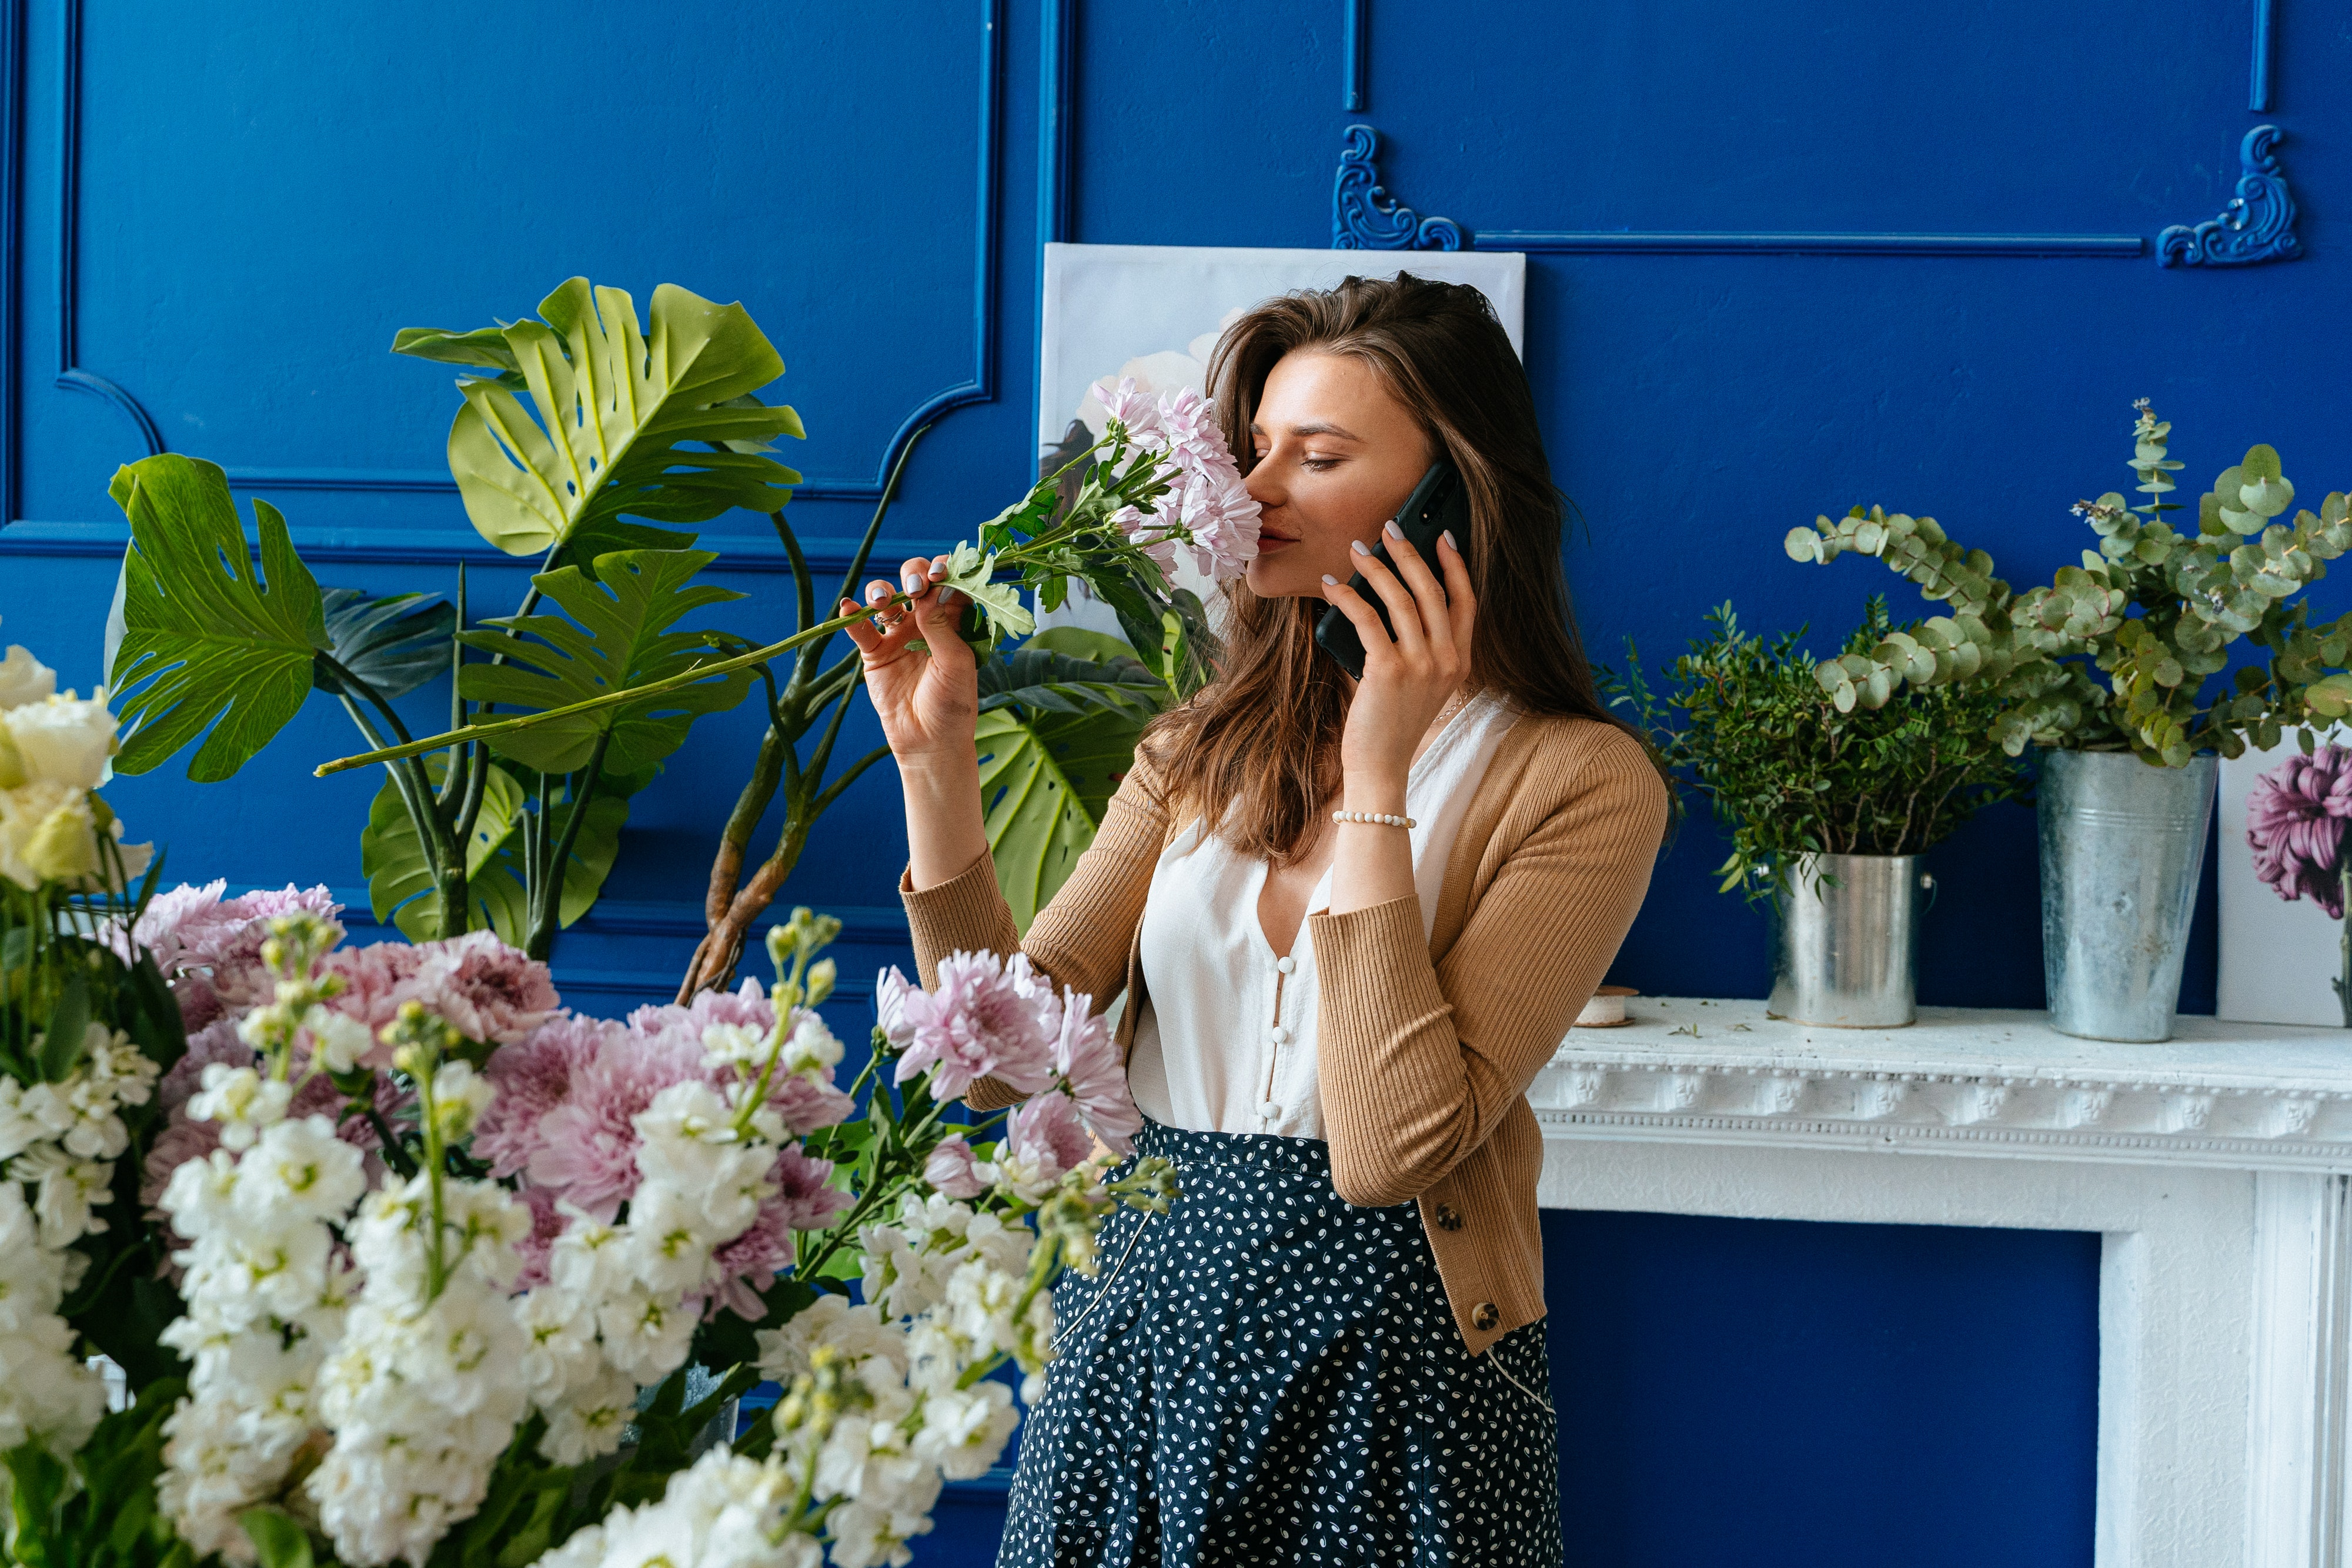 8 Little Tricks to Make Your Home Smell Great